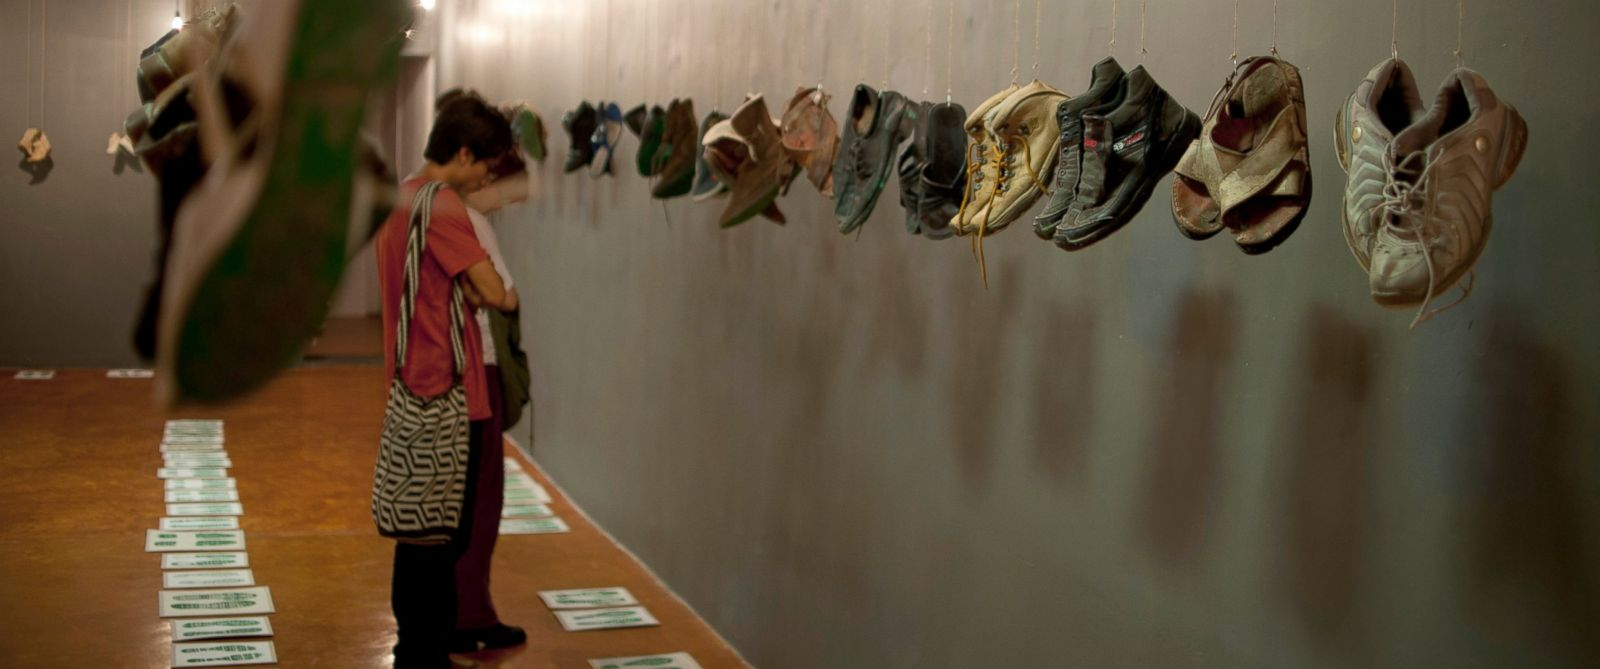 Hanging Shoes Honor Thousands of Missing People in Mexico Museum - ABC News